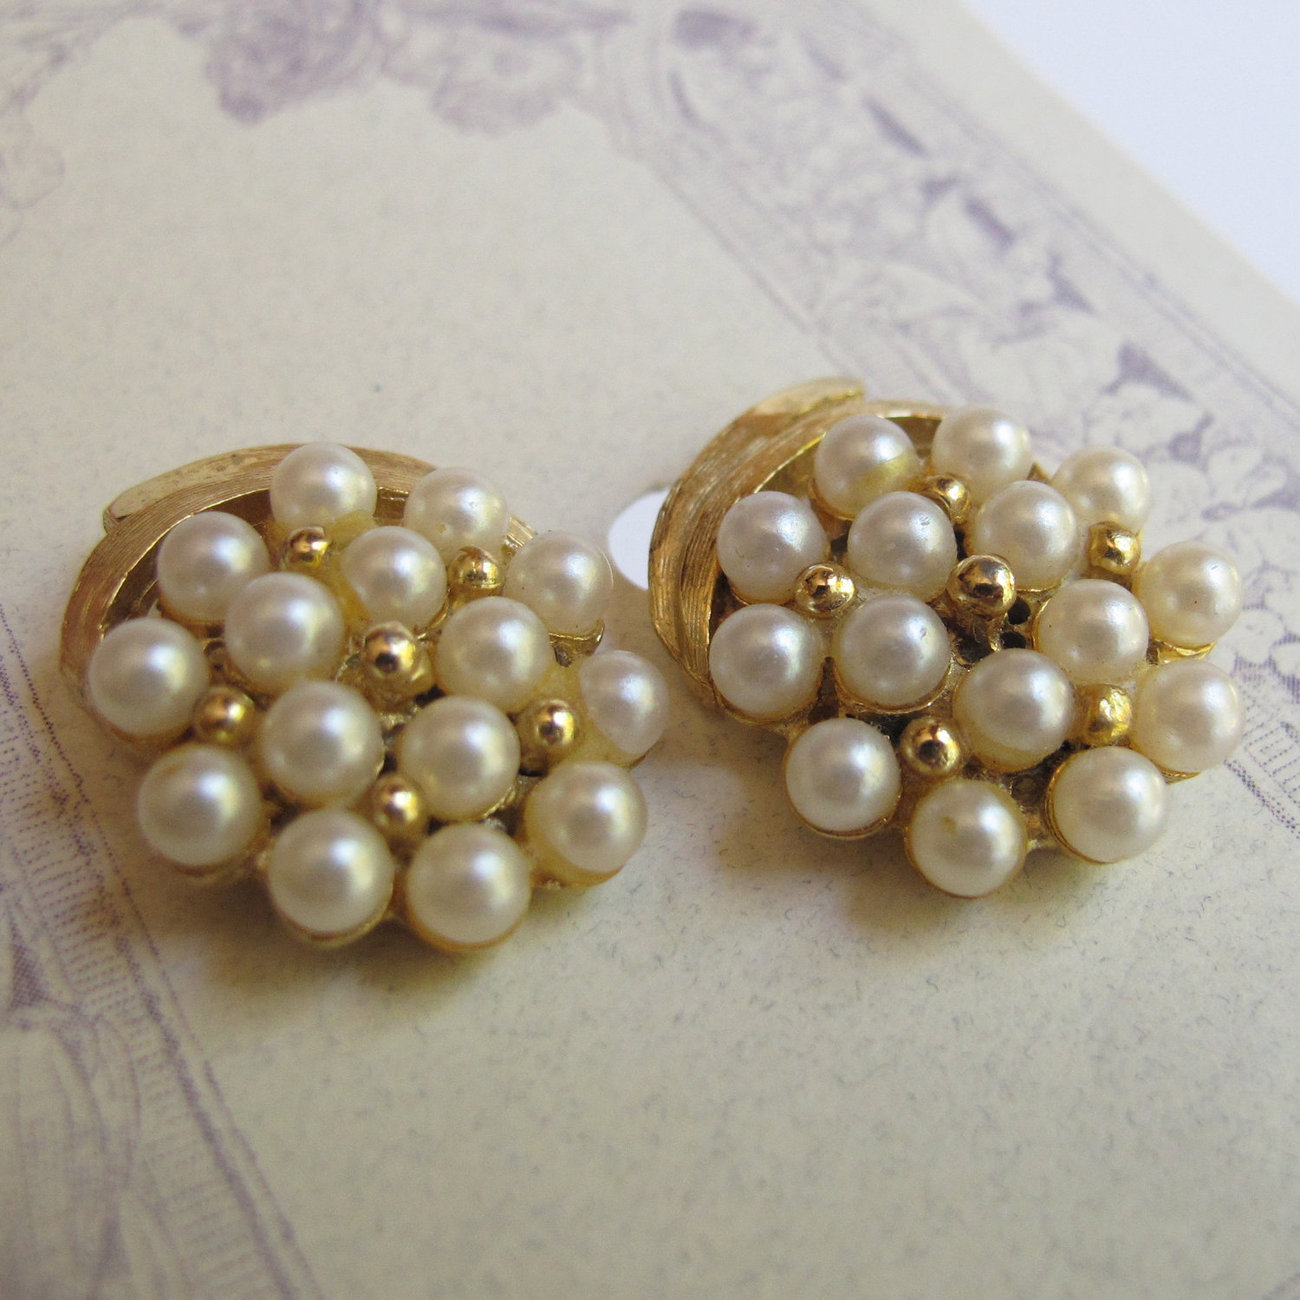 Elegant vintage pearl cluster button earrings